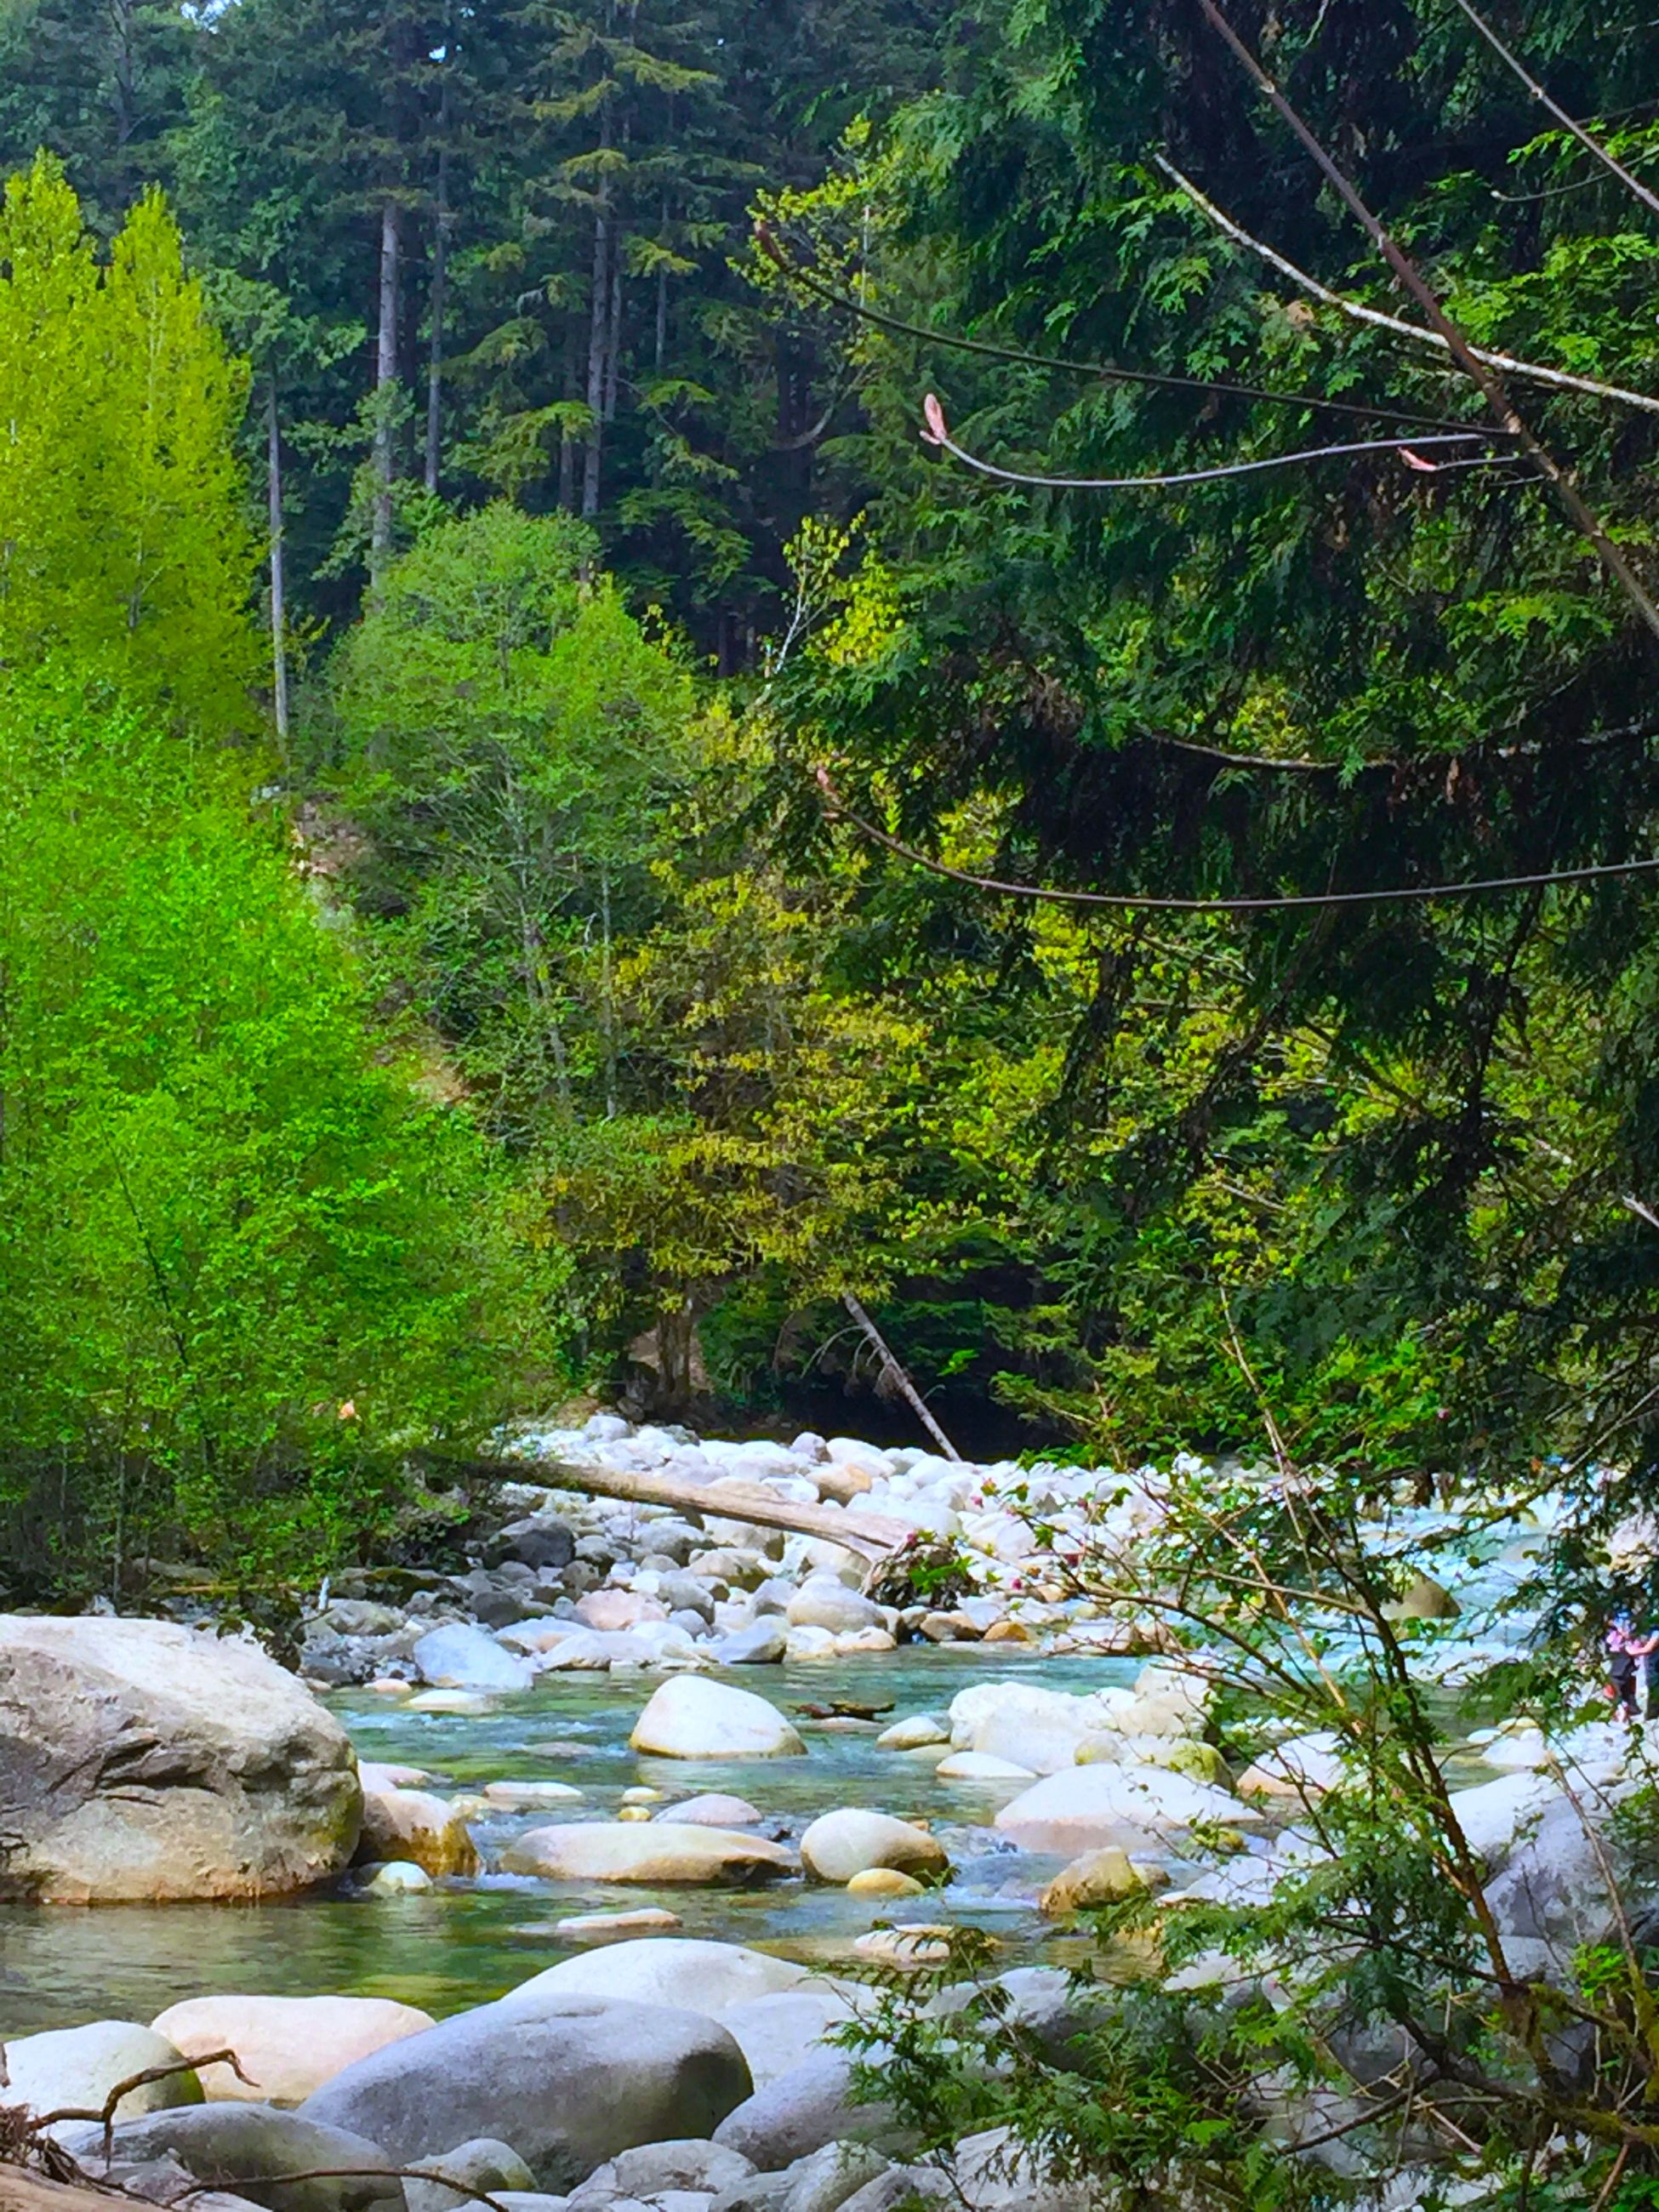 tree, water, growth, tranquility, green color, tranquil scene, plant, stream, nature, beauty in nature, forest, scenics, river, rock - object, lush foliage, branch, green, day, outdoors, lake